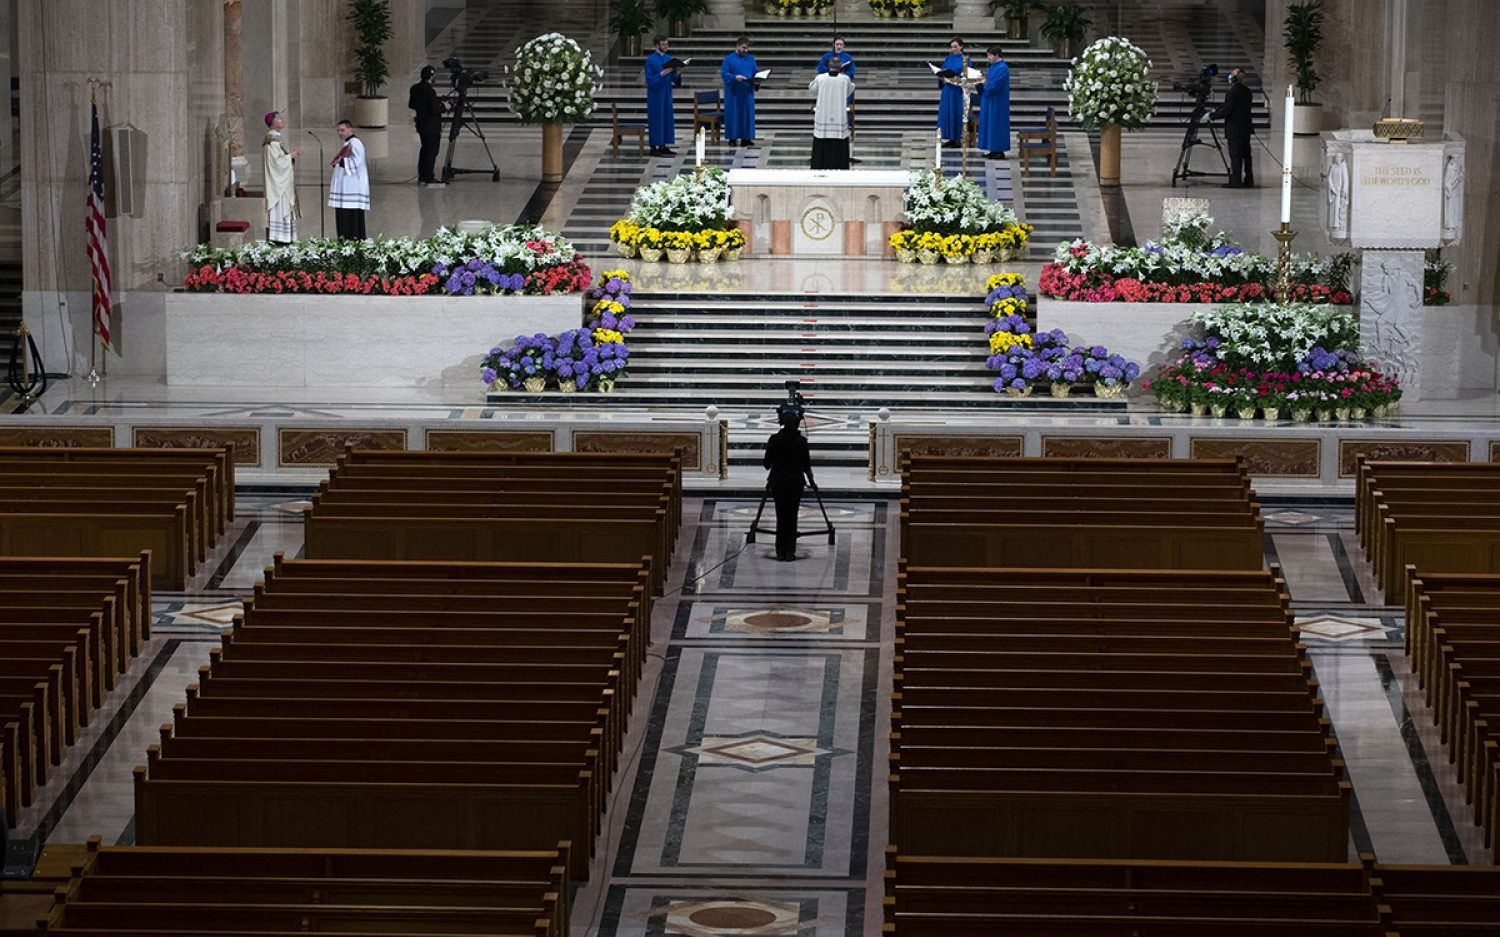 Sunday services can reconvene in D.C.